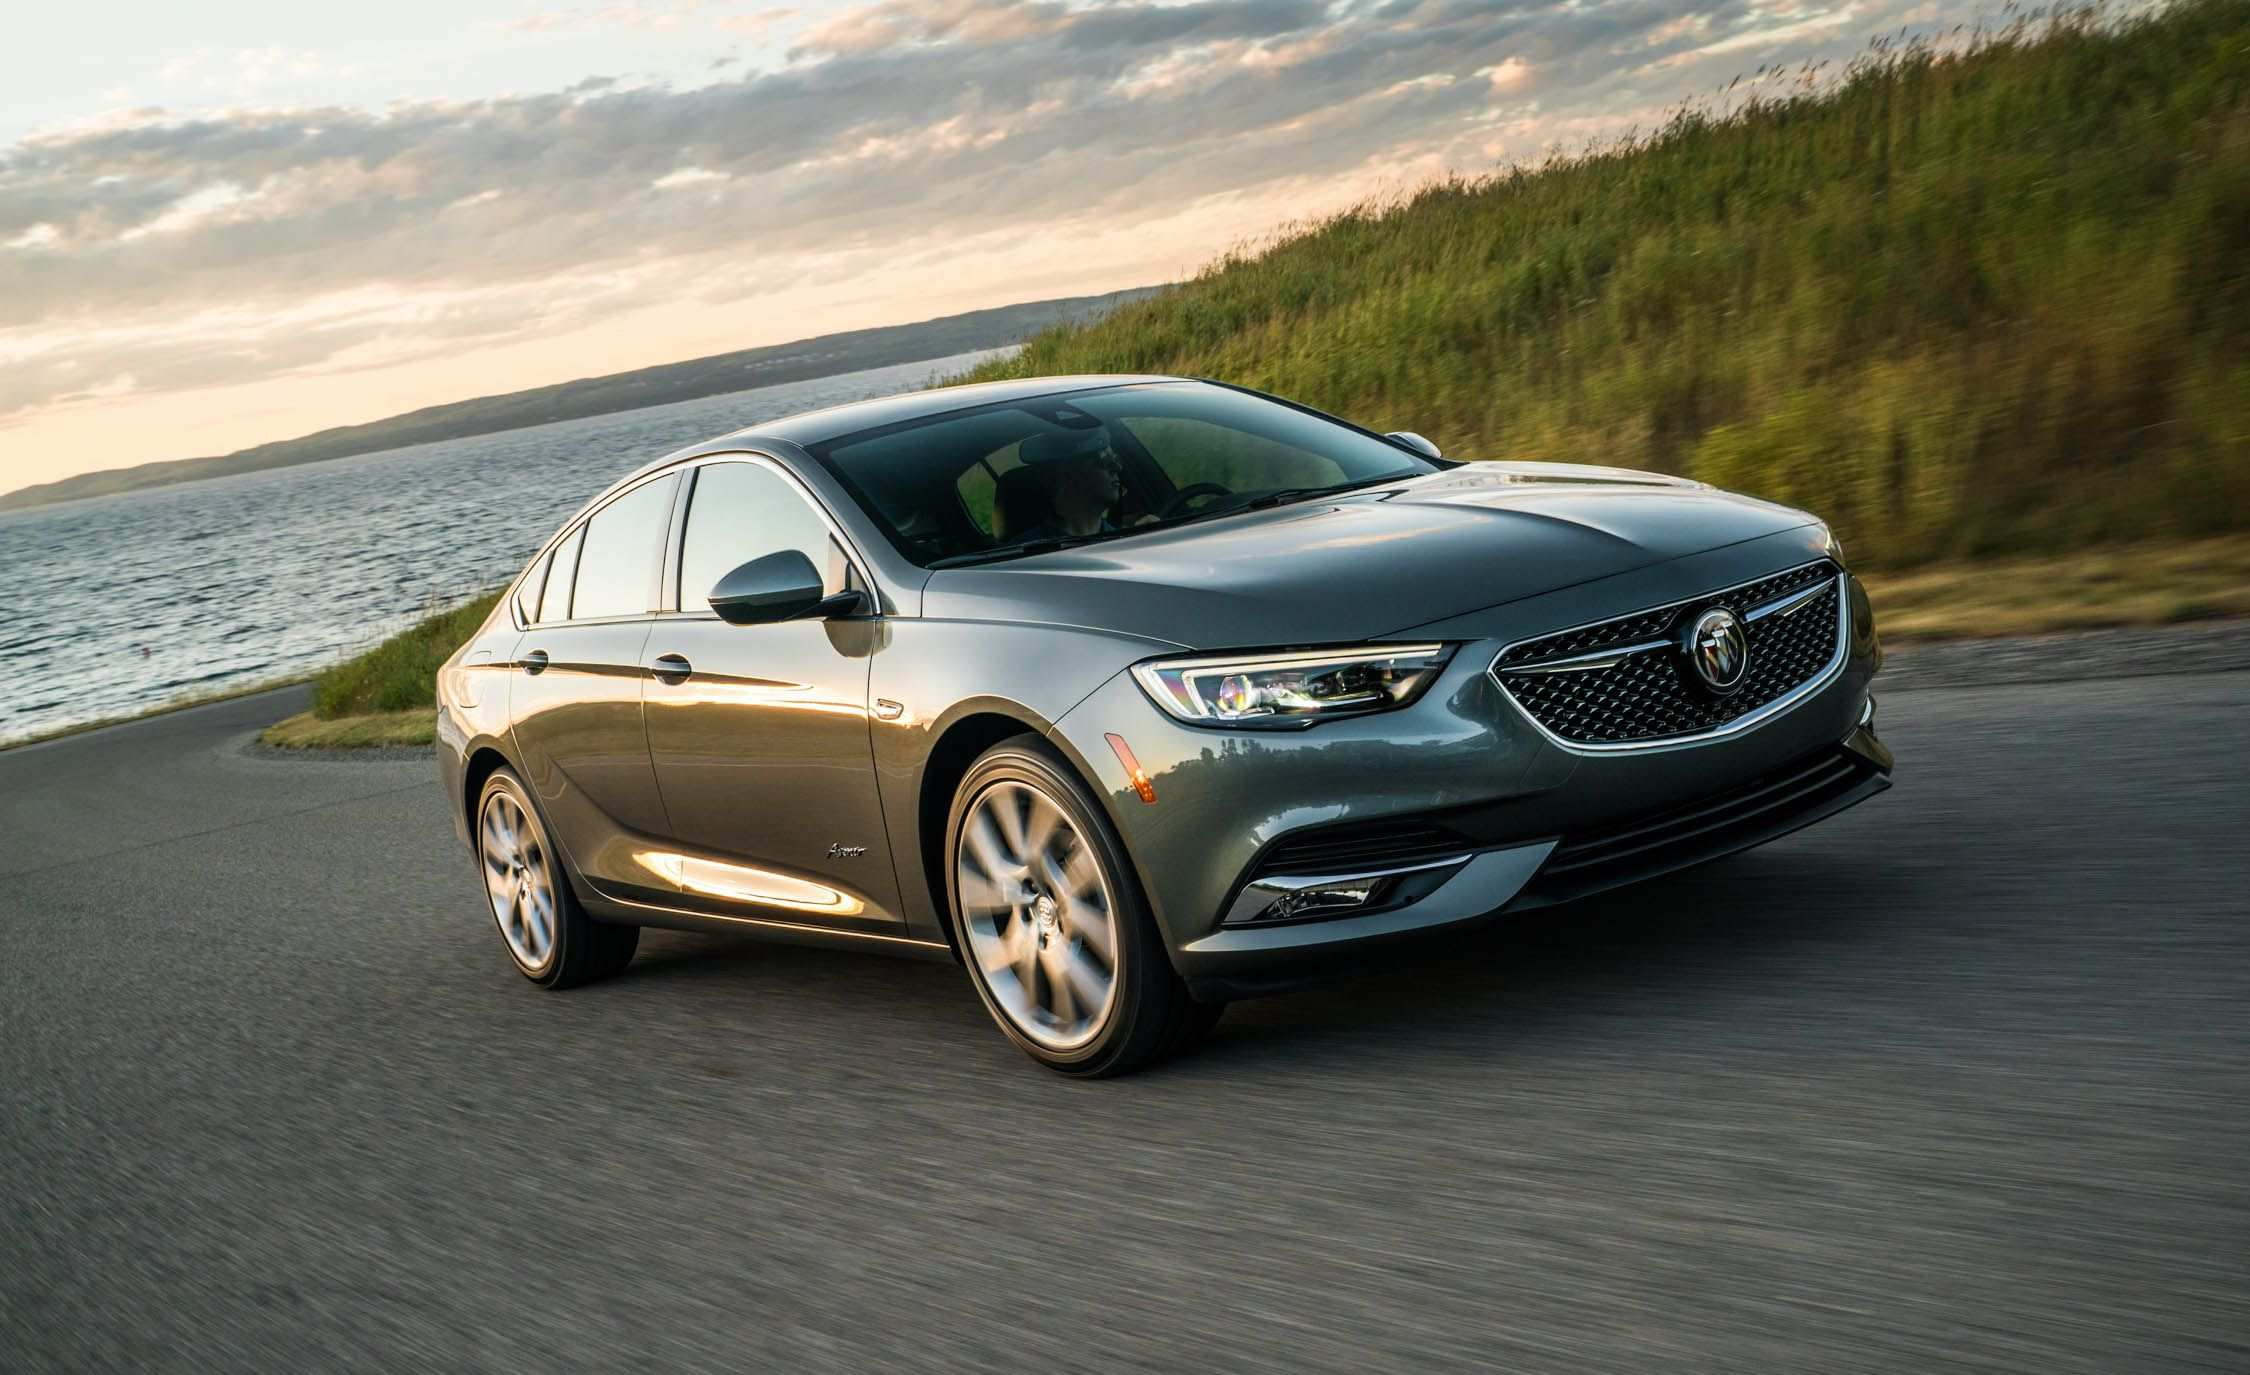 15 Great Best Buick 2019 Sedan Engine Redesign and Concept for Best Buick 2019 Sedan Engine